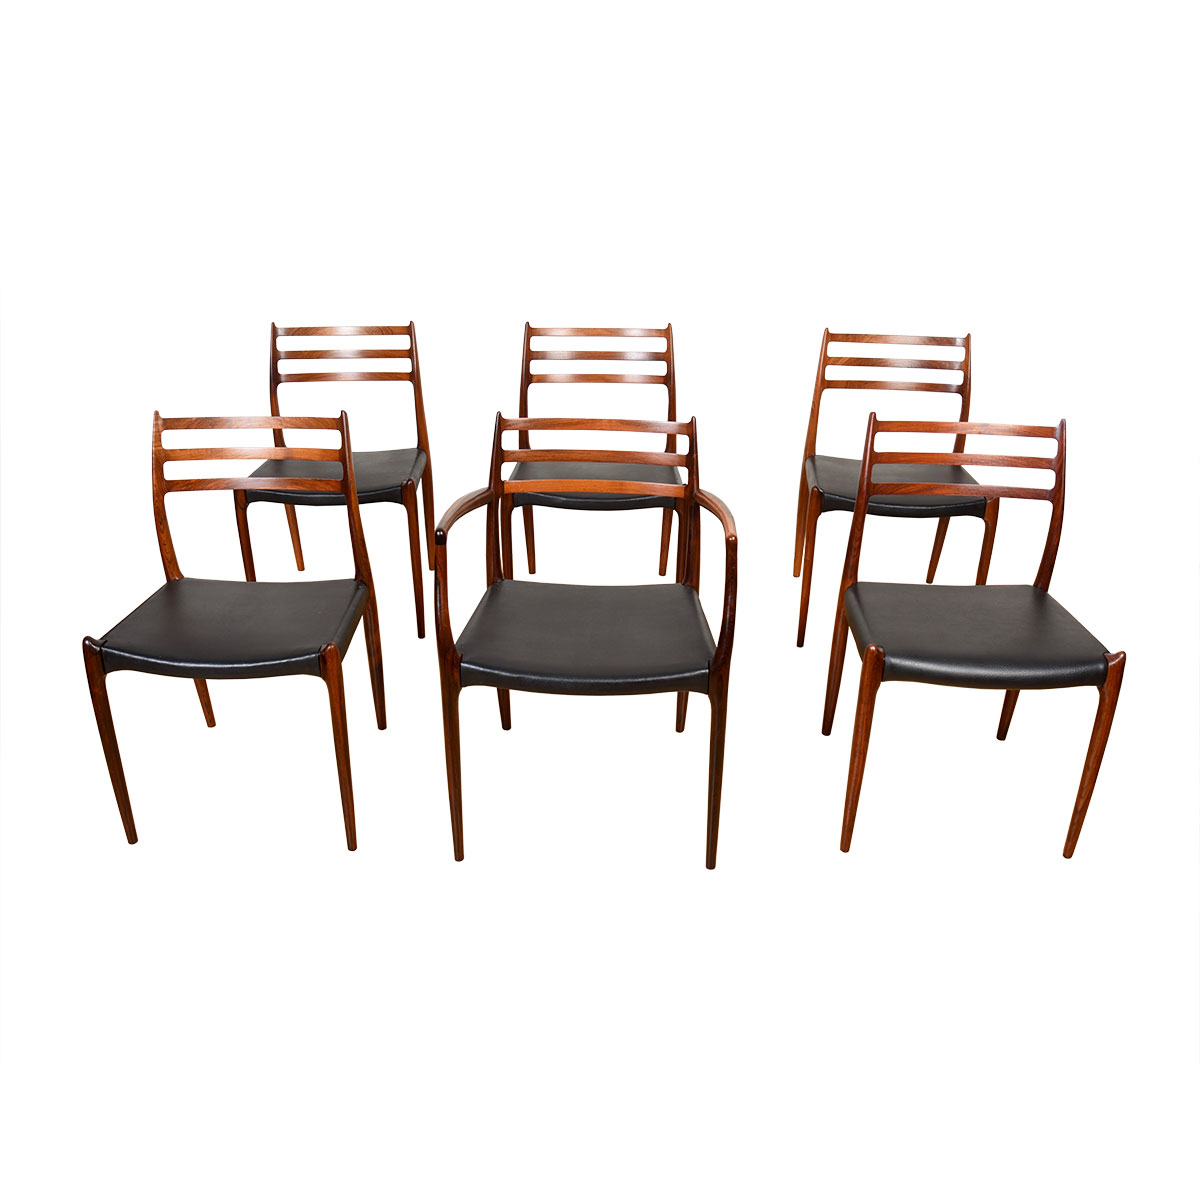 Set of 6 Niels Moller Brazilian Rosewood Dining Chairs (1 Arm + 5 Side)